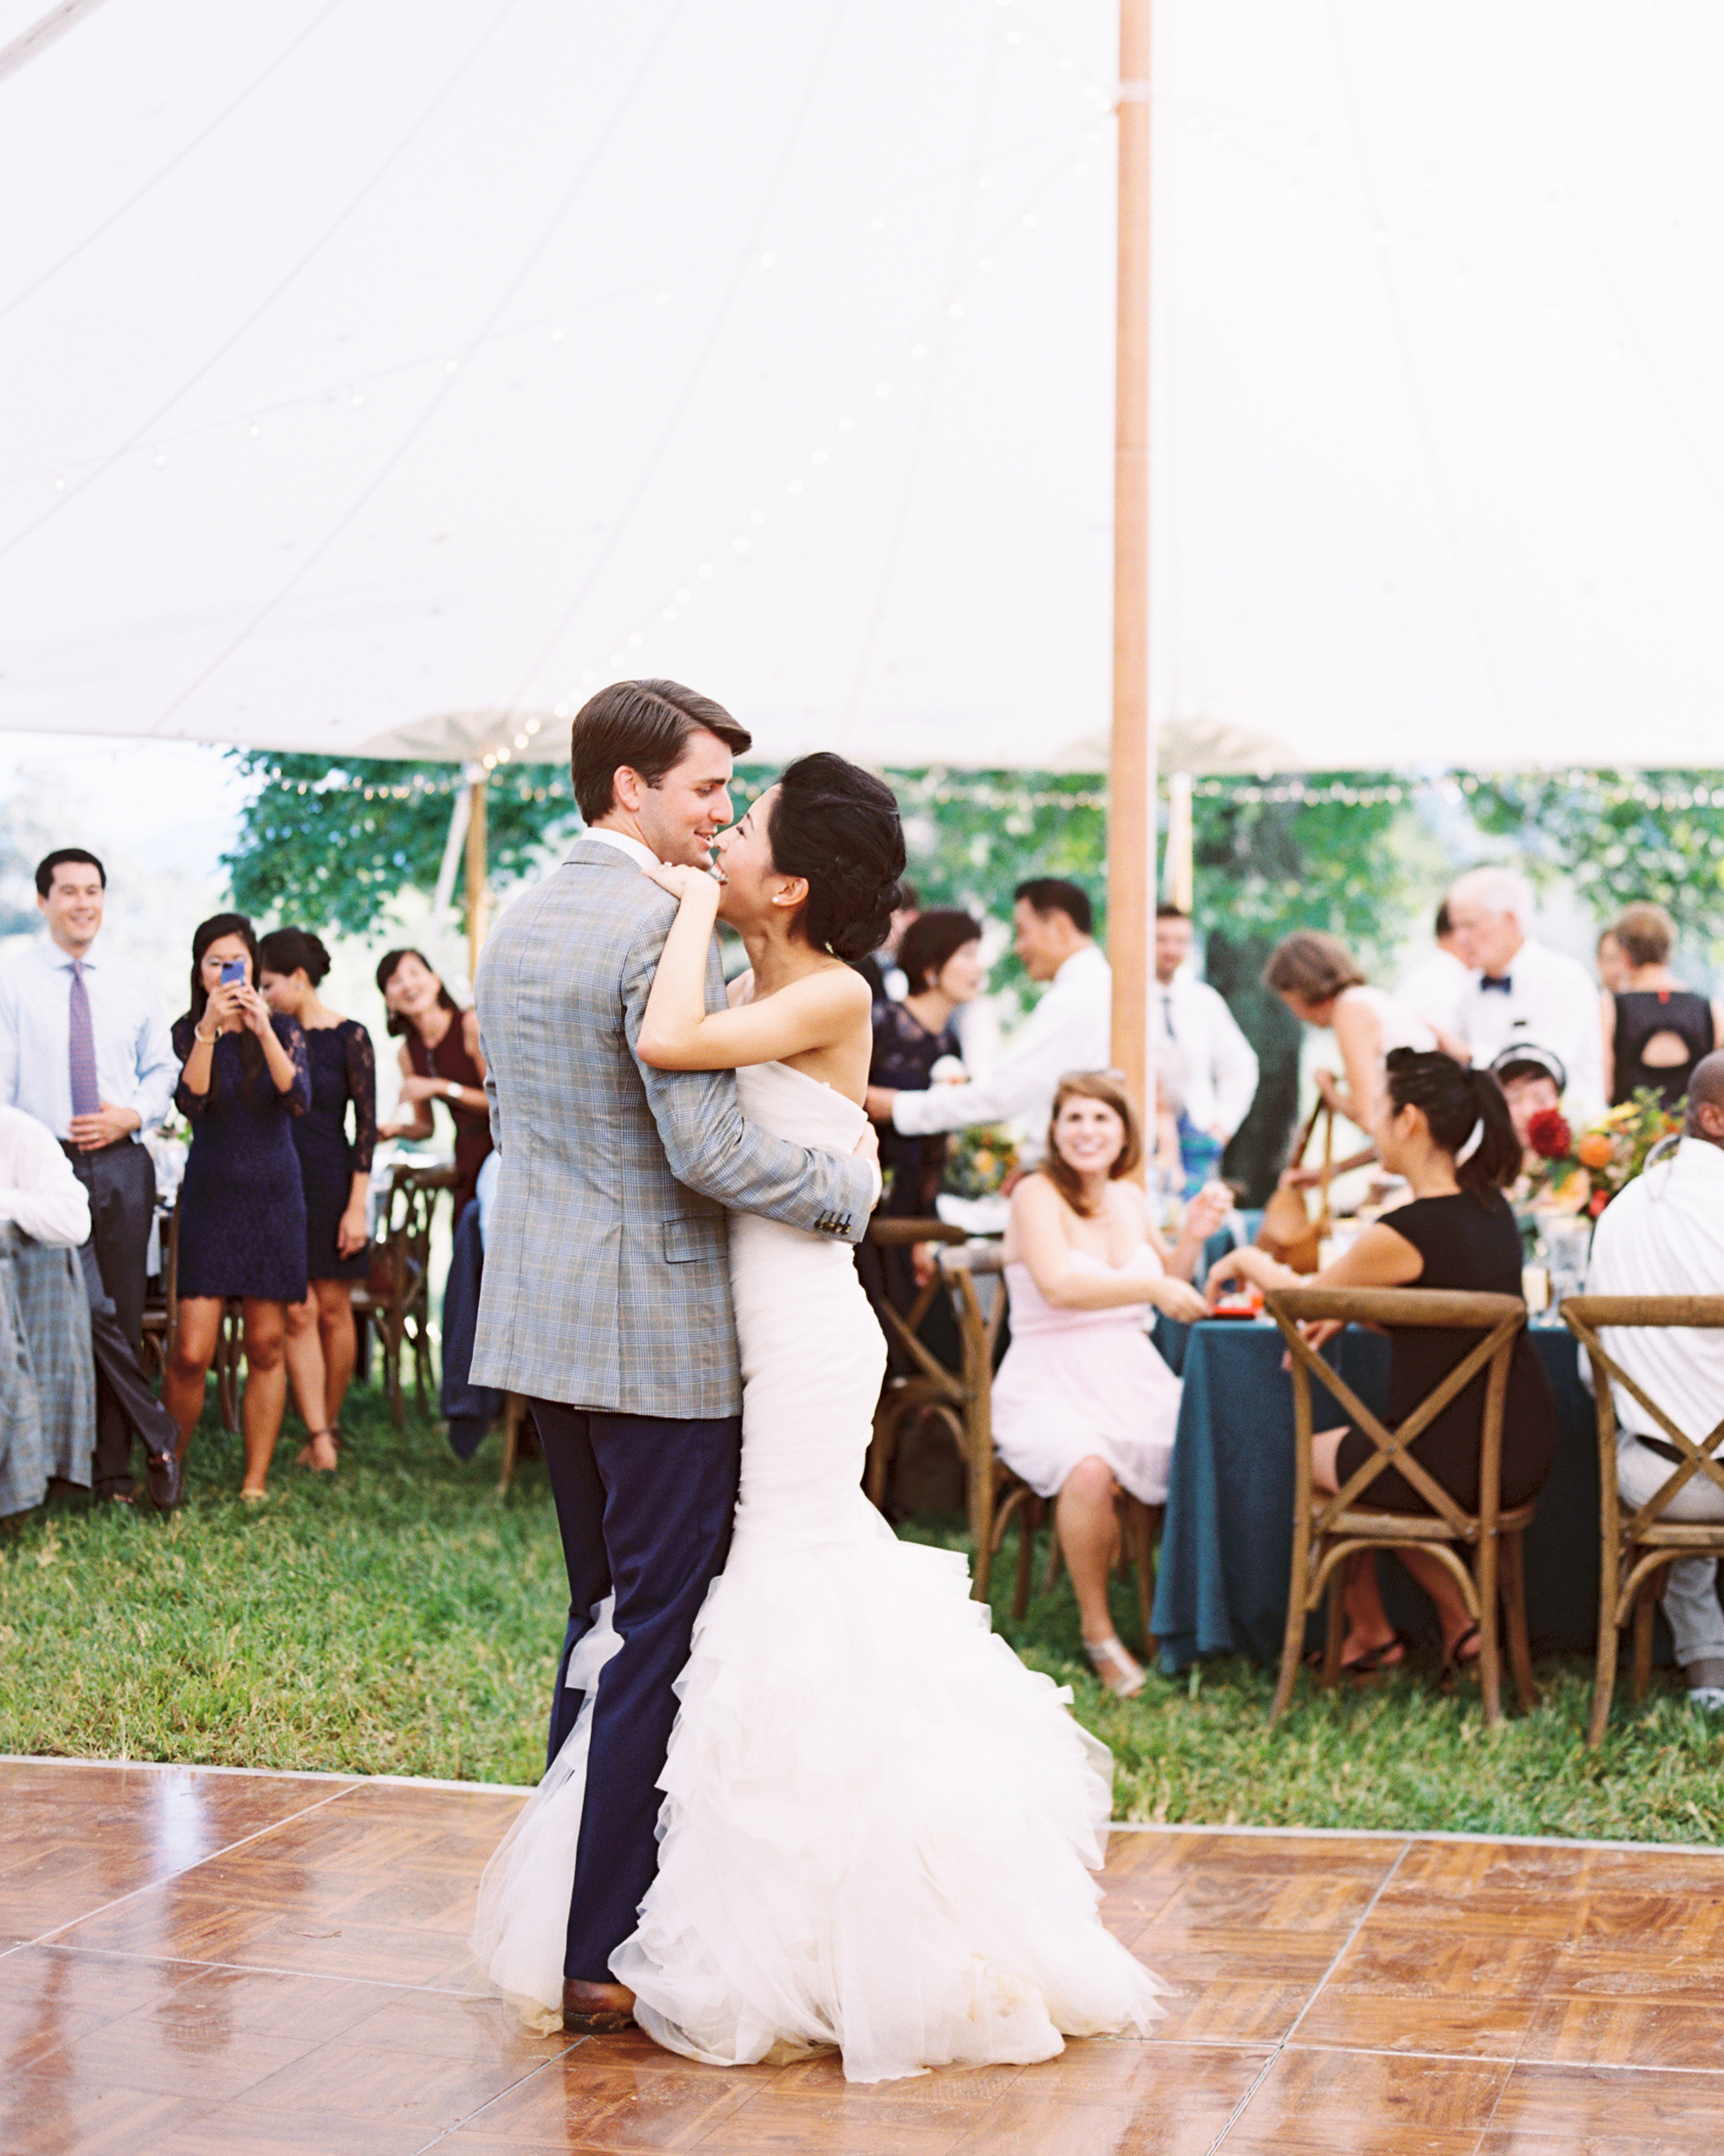 The 10 Songs You Heard at Every Wedding in 2015